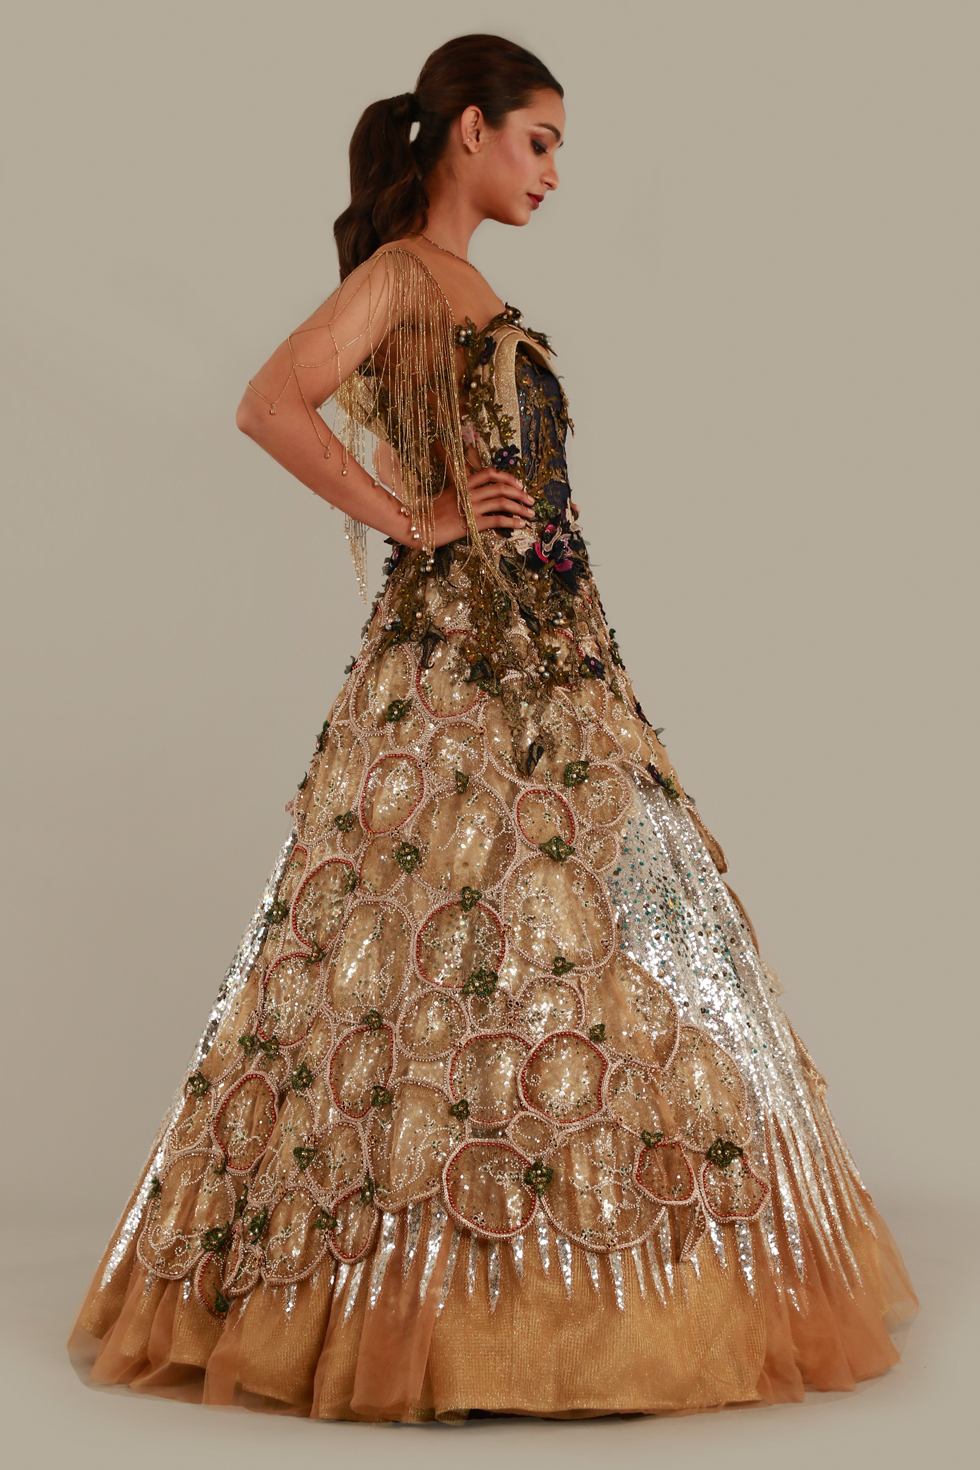 Beige gold shimmery gown with cut work, silver sequins, illusion neckline and tassels